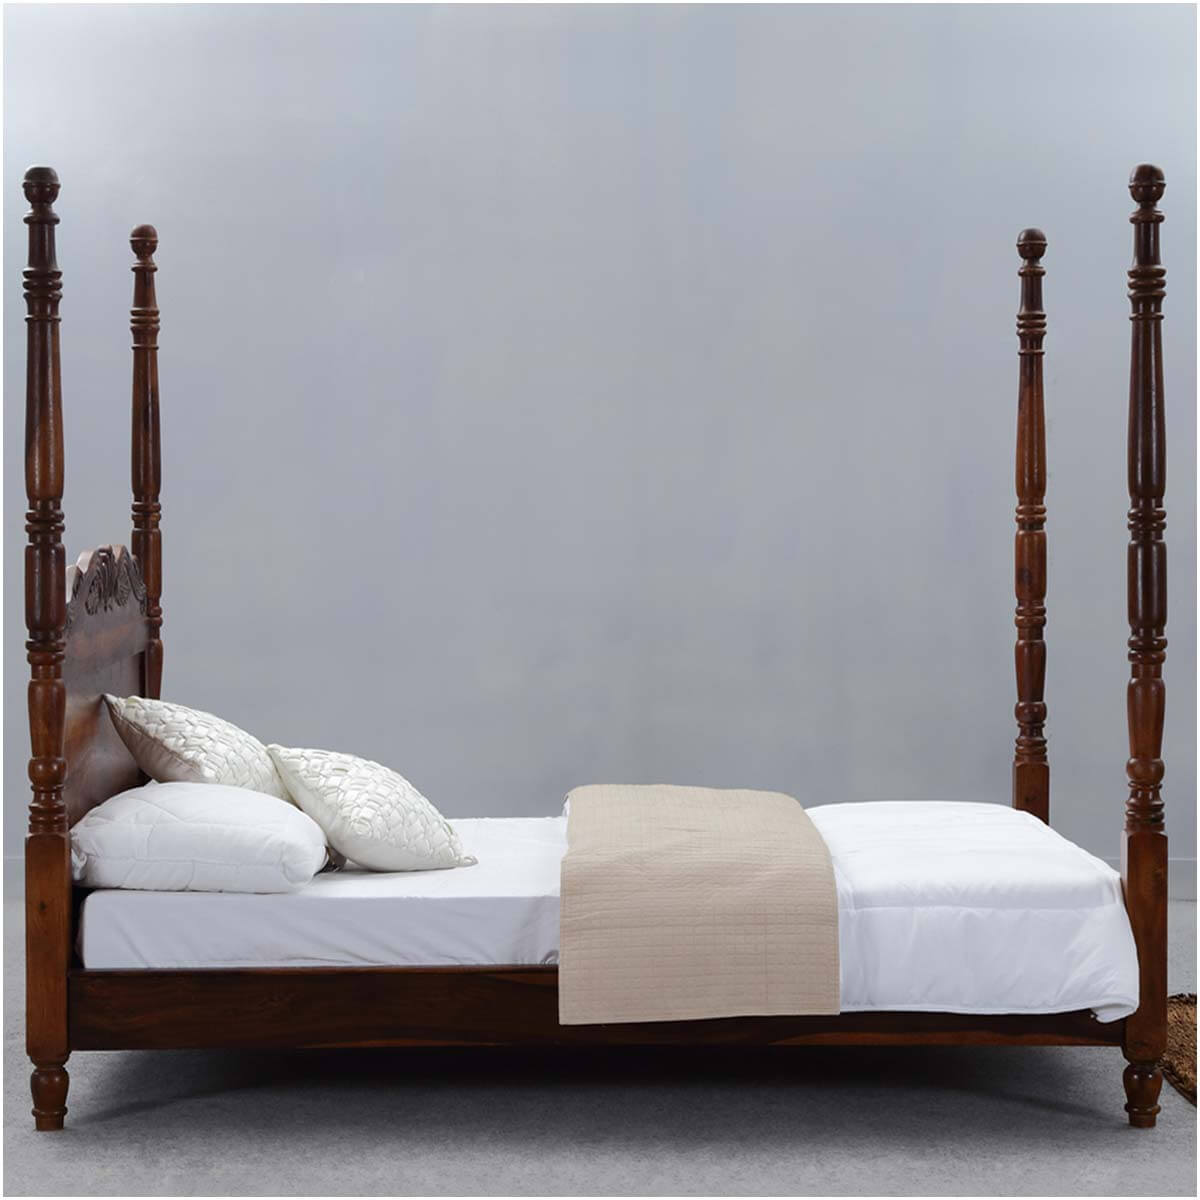 Wood Four Poster Beds Queen Anne Solid Wood Four Poster Platform Bed Frame W